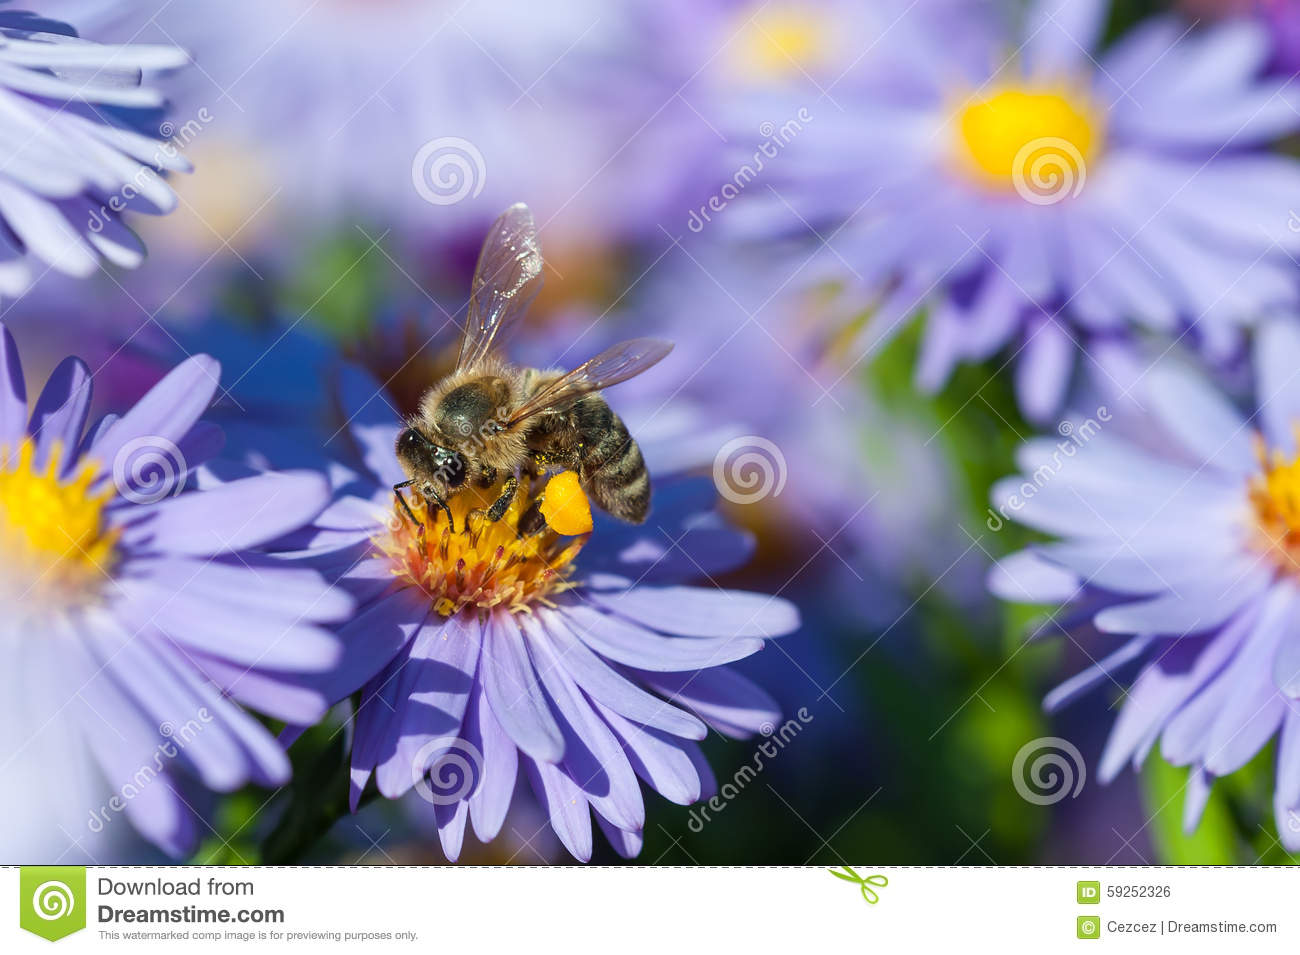 European honey bee on aster flower